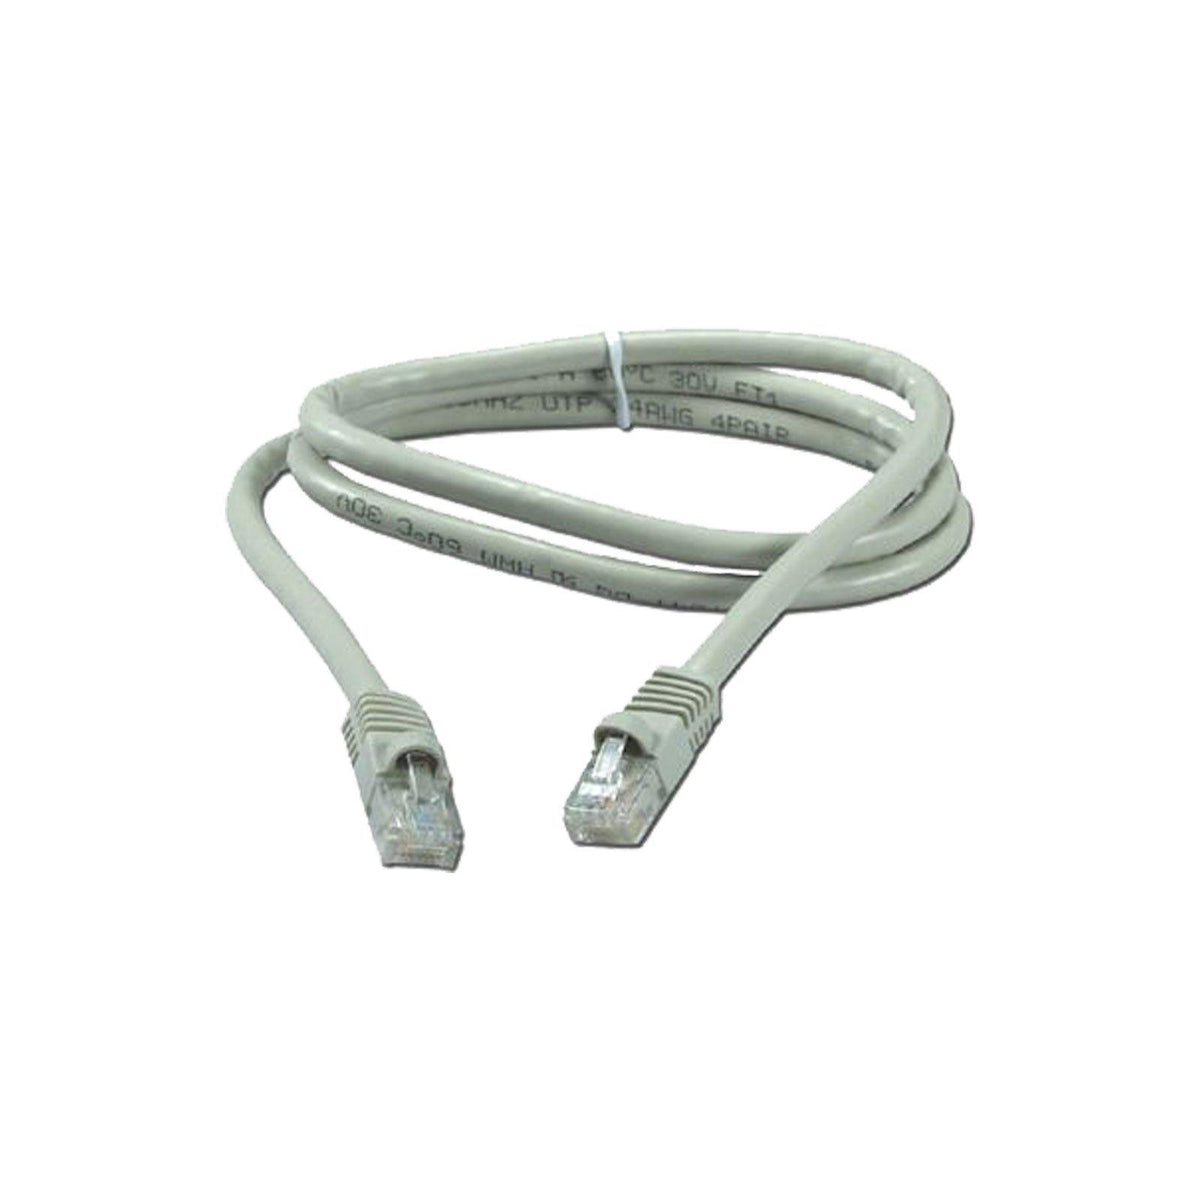 RJ12 UTP Cable 0,3 m - SBP Electrical